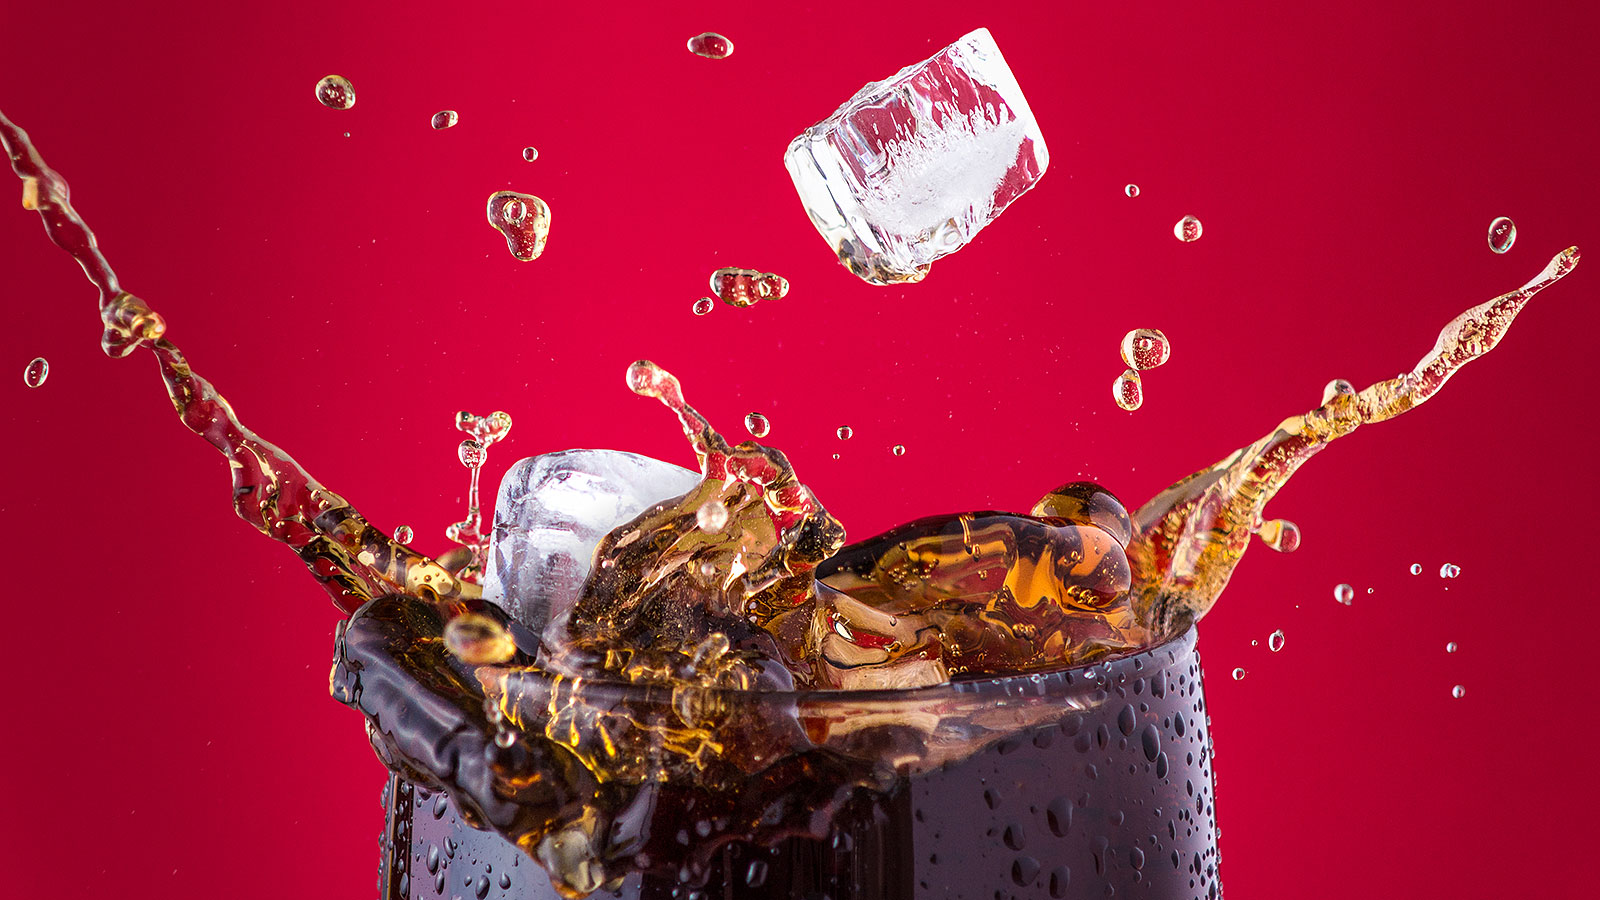 New study reveals the drink that is even worse for you than soda